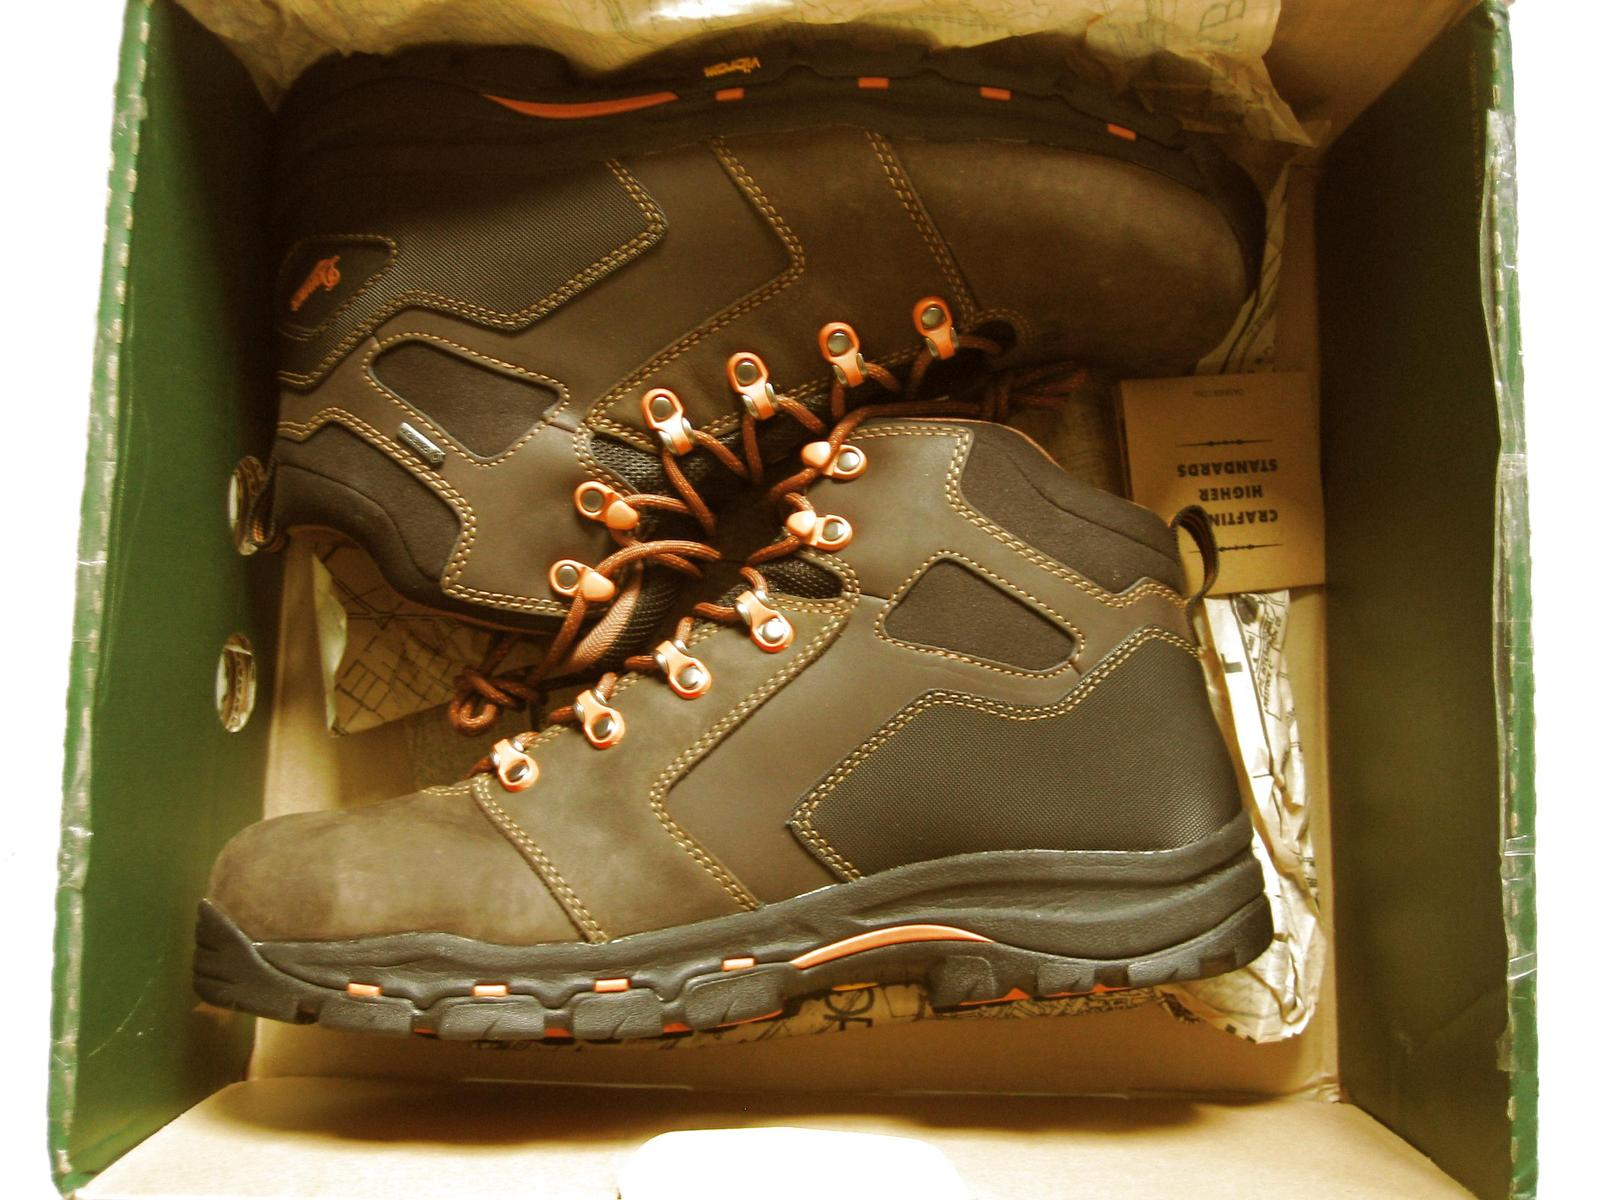 ed850665638 New Danner Vicious 4.5 Inch Waterproof and 50 similar items